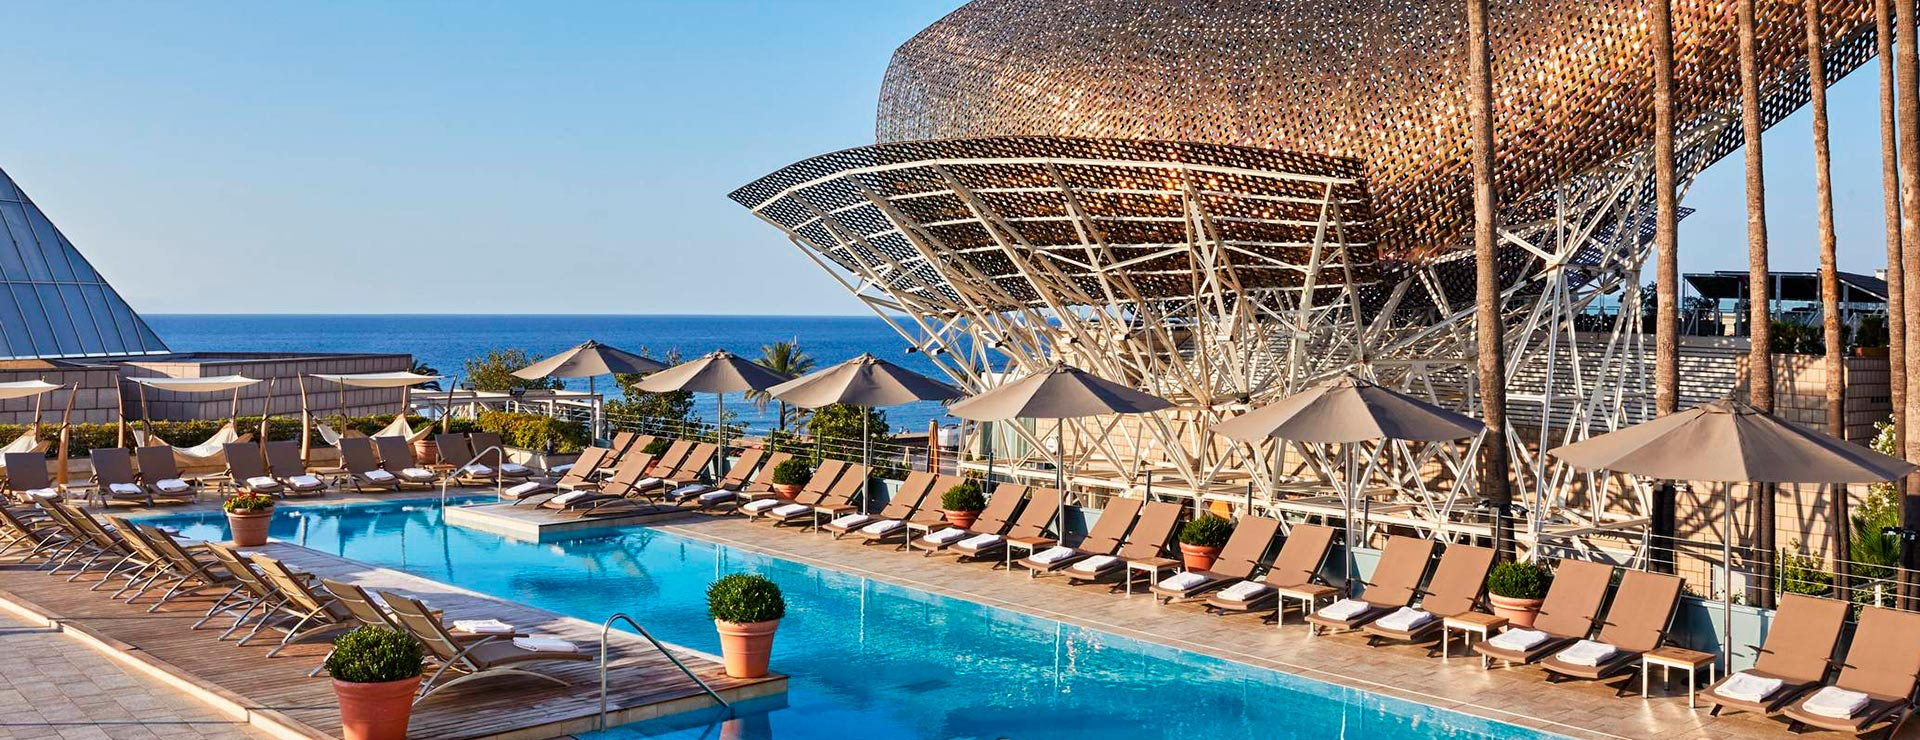 hotel arts barcelona experience a luxurious 5 star stay beside the sea